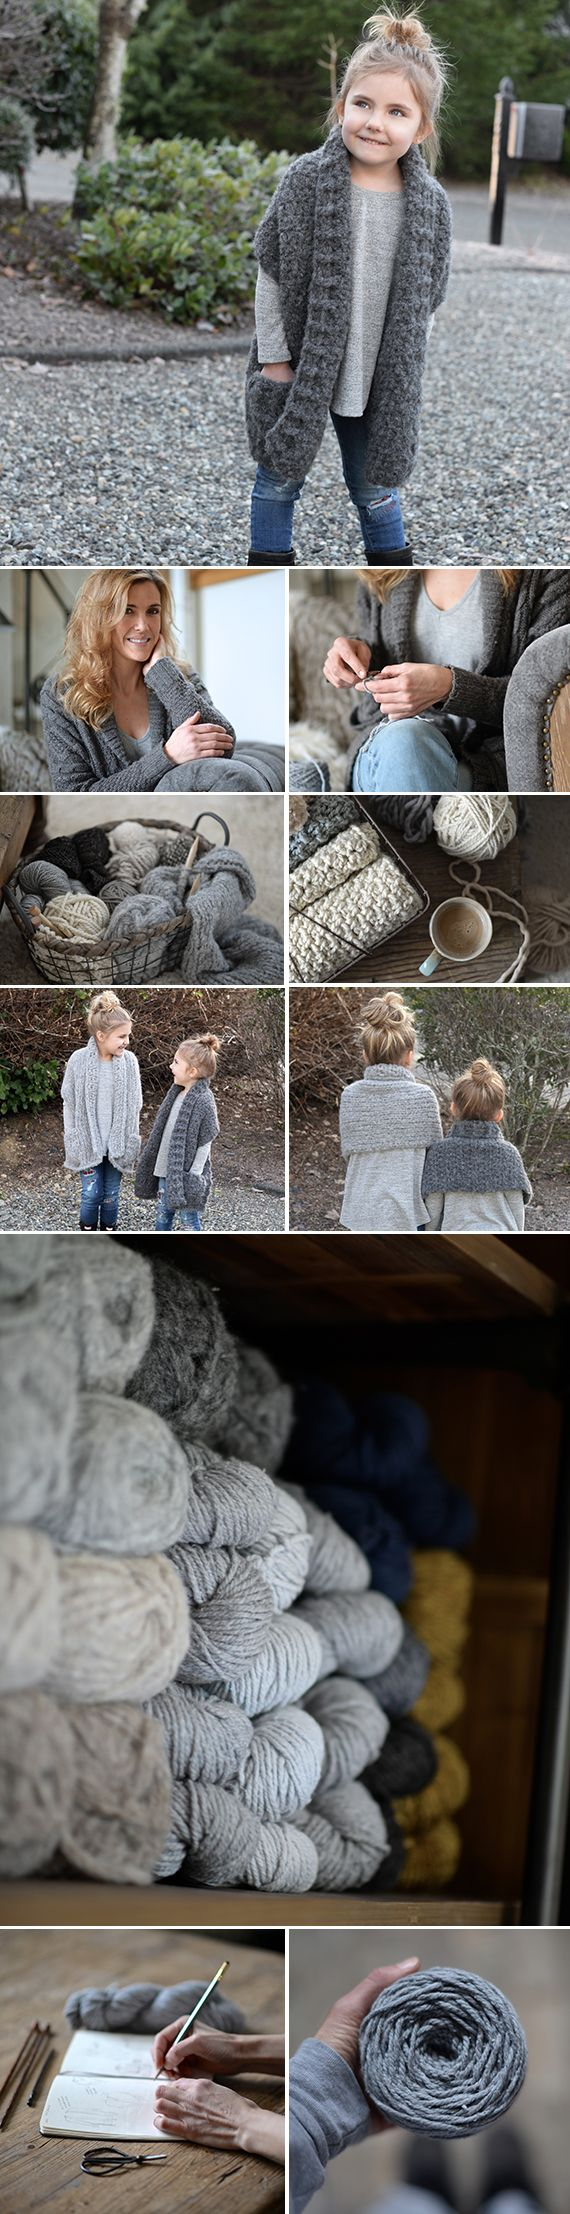 """""""Sometimes if I design something for a child, I think, 'That's so cute, I want one!' And if I want one, maybe other people do too. I try to design things that are timeless and classic, and keep things versatile so they work for everyone."""" Inspired by the rainy Pacific Northwest, this mother of three turned her luxurious knit and crochet designs into a wildly successful pattern business. Meet Heidi"""